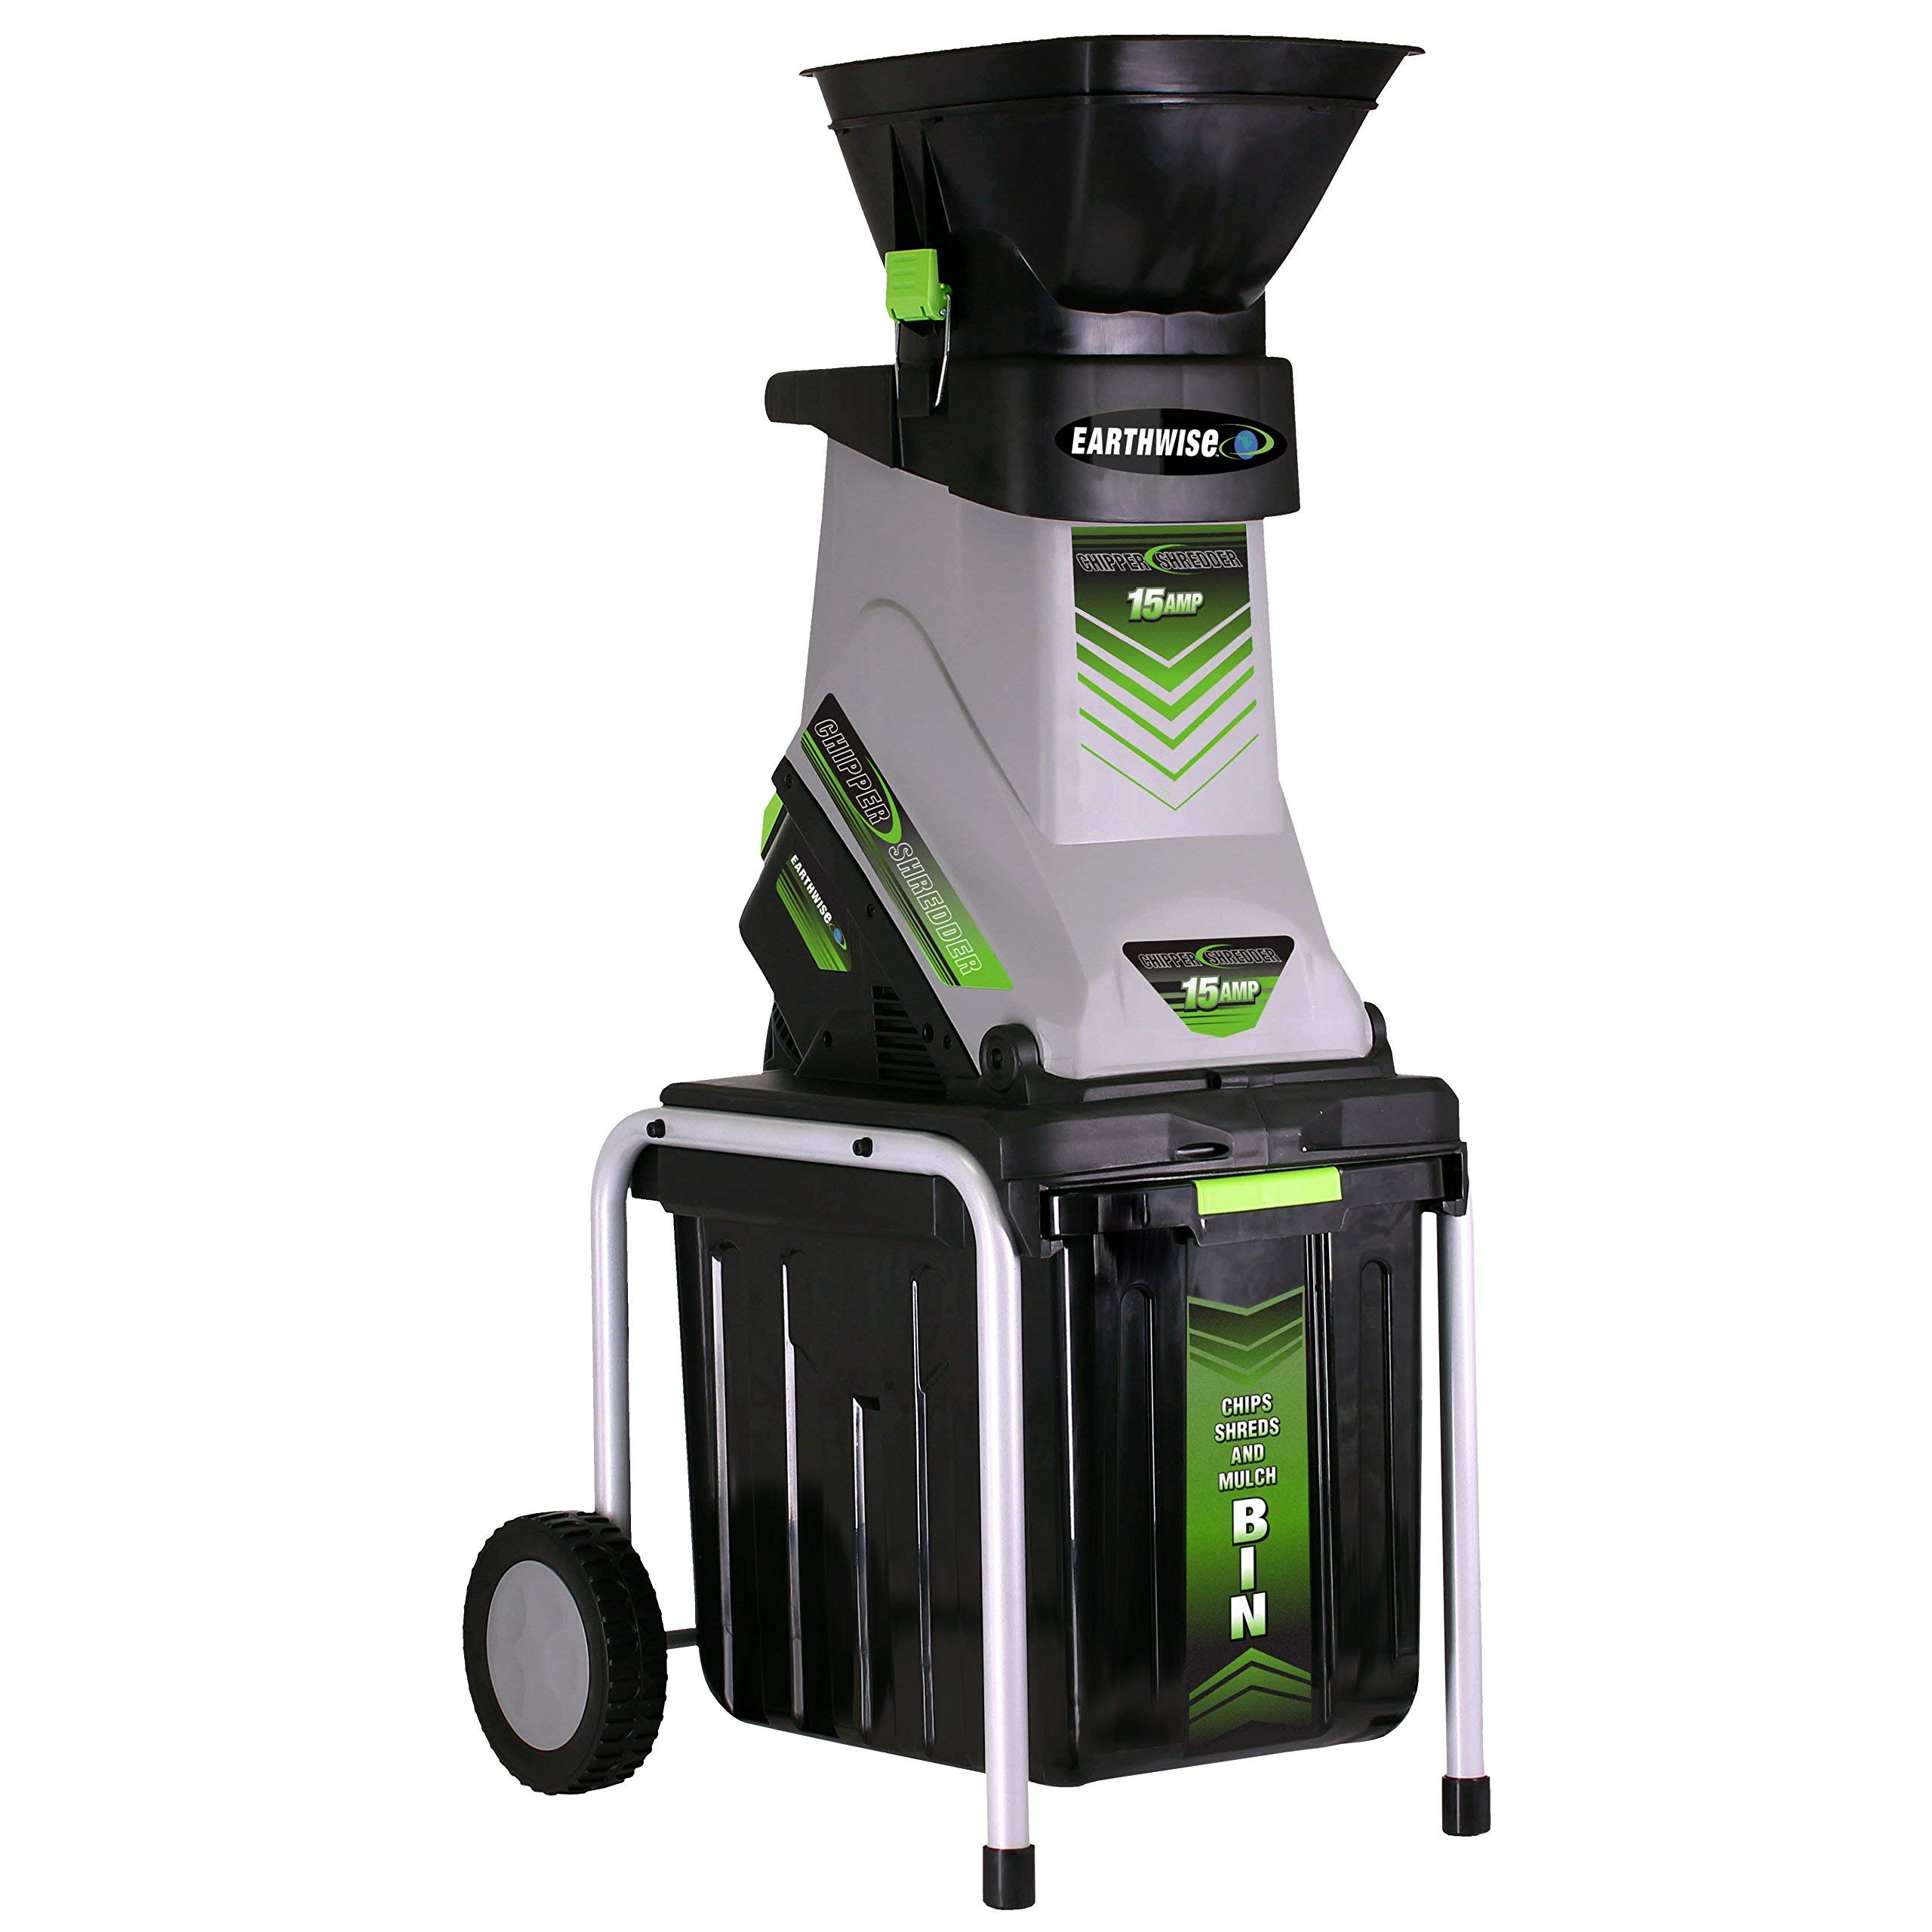 Earthwise GS70015 15 Amp Electric Garden Chipper/Shredder with Collect, Bin (Renewed)